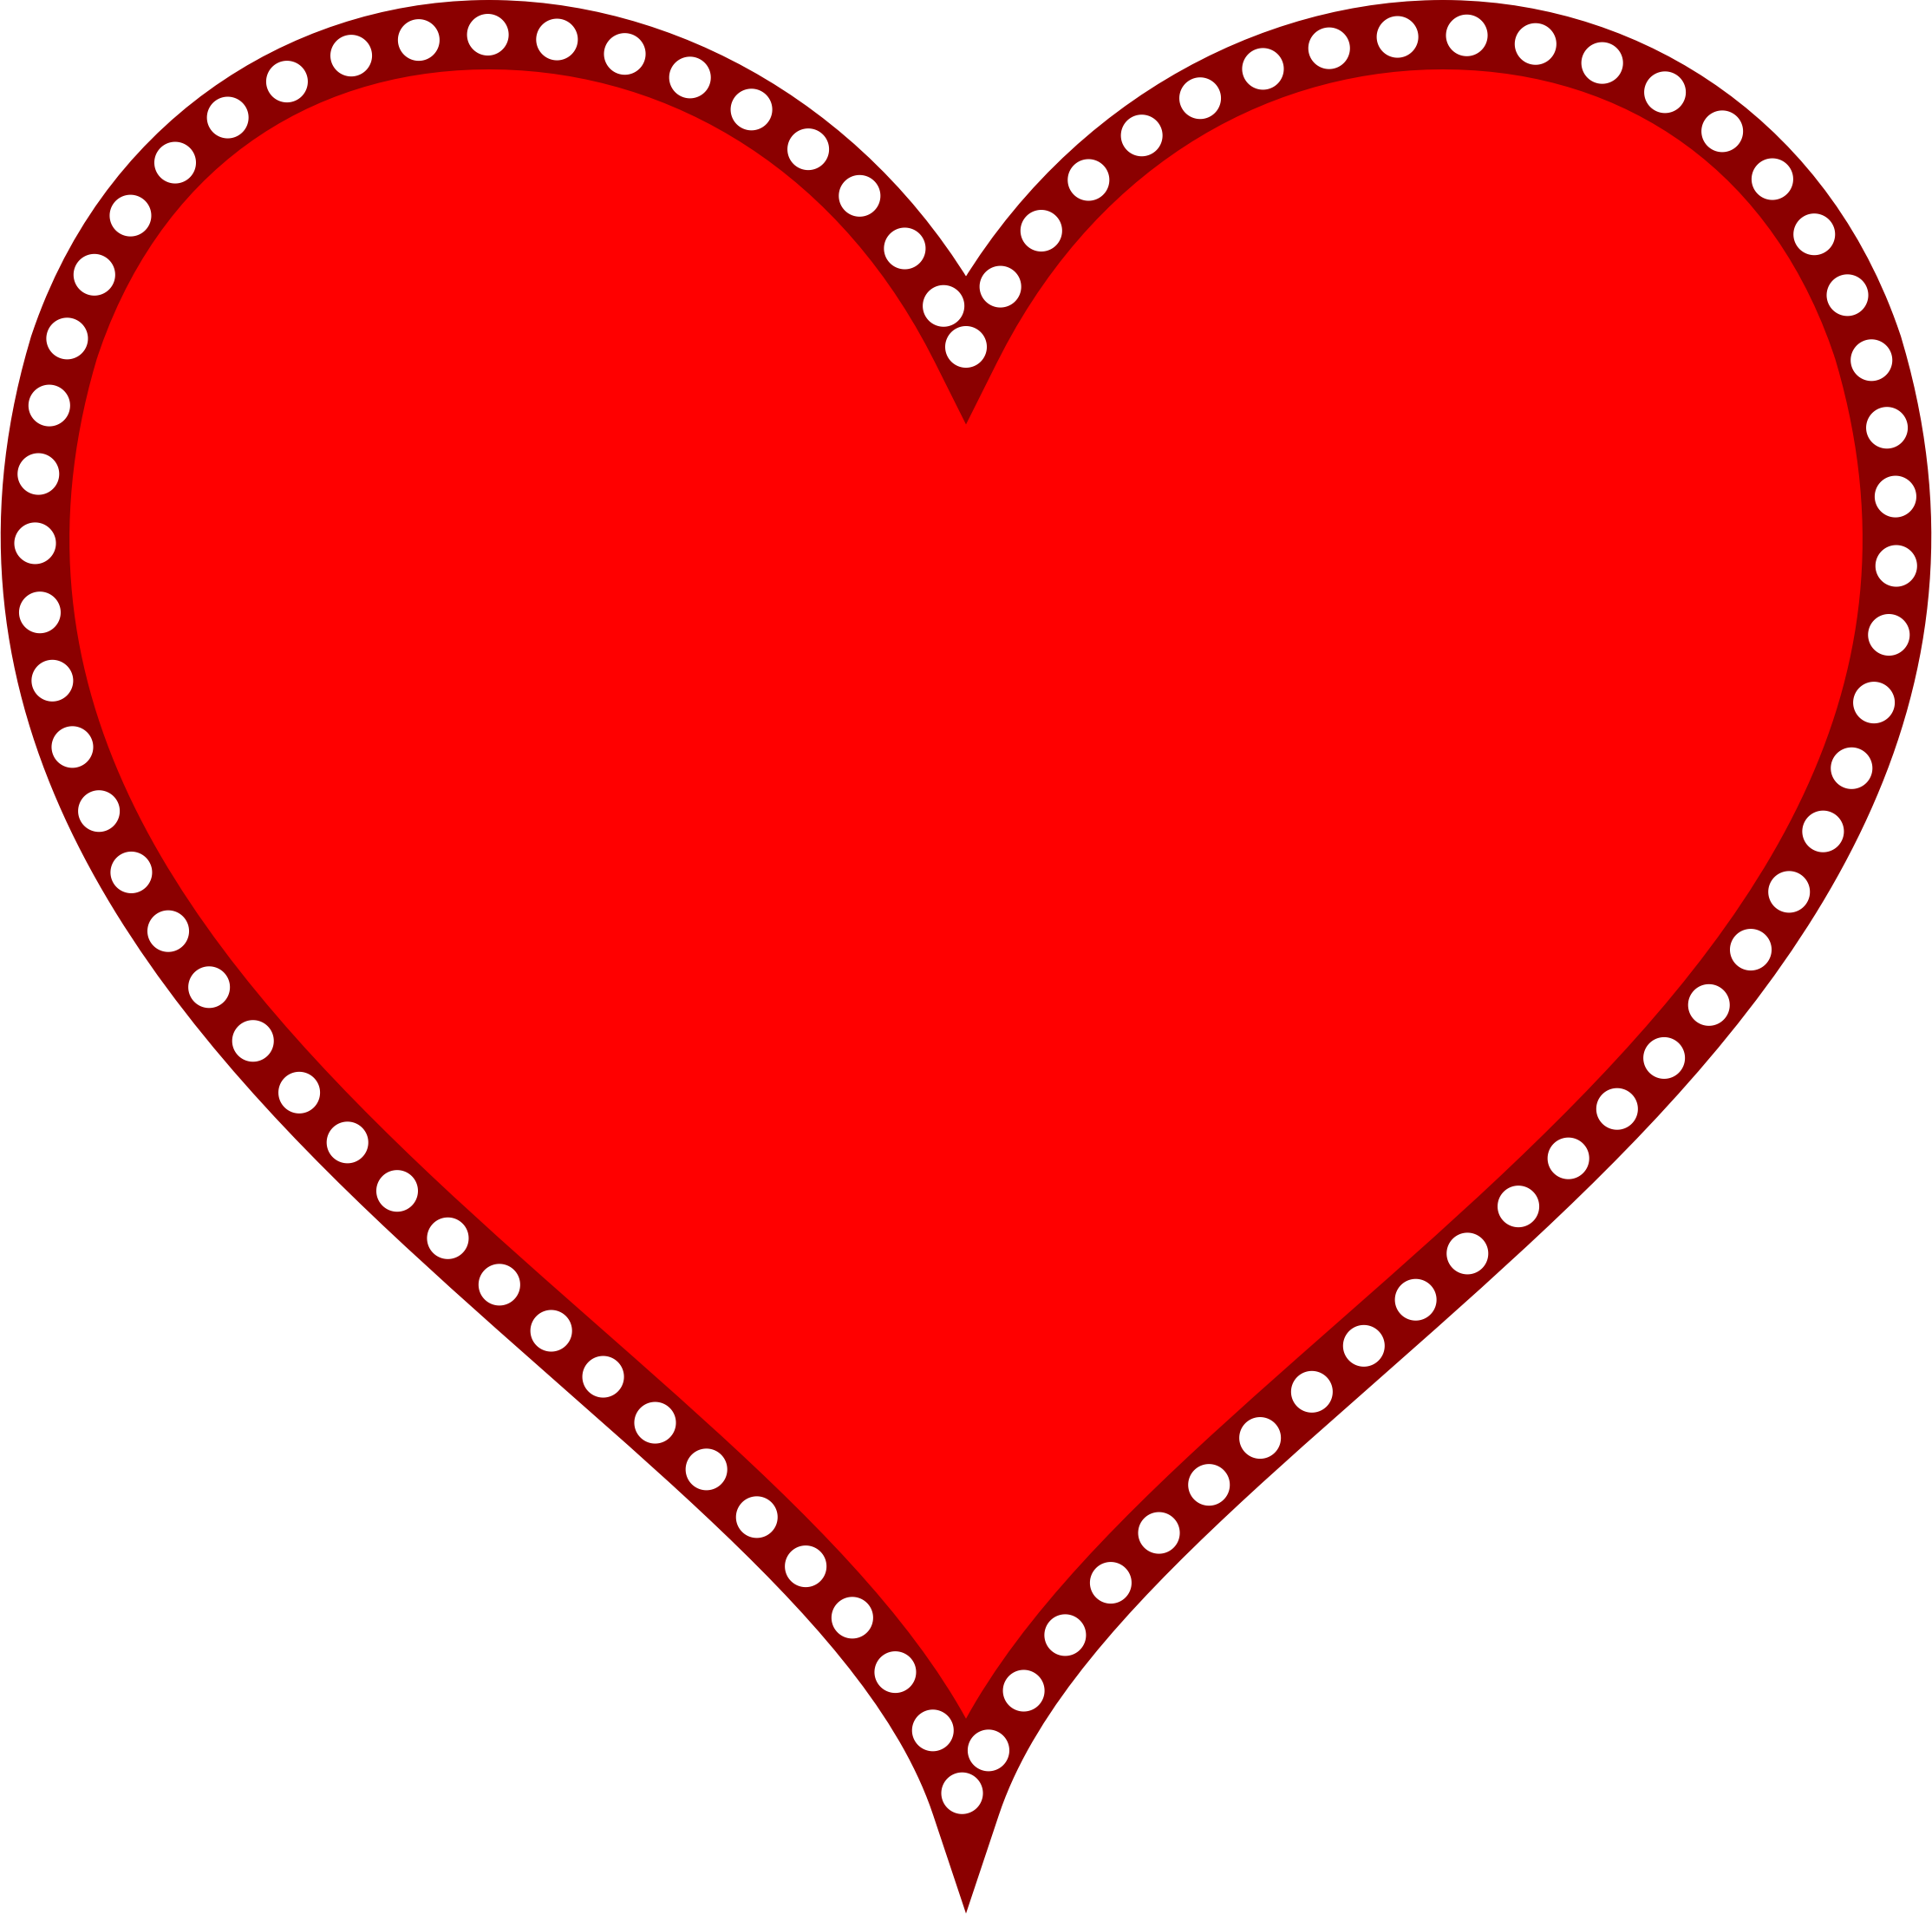 Heart organ clipart image freeuse library Clipart - Heart Animation image freeuse library